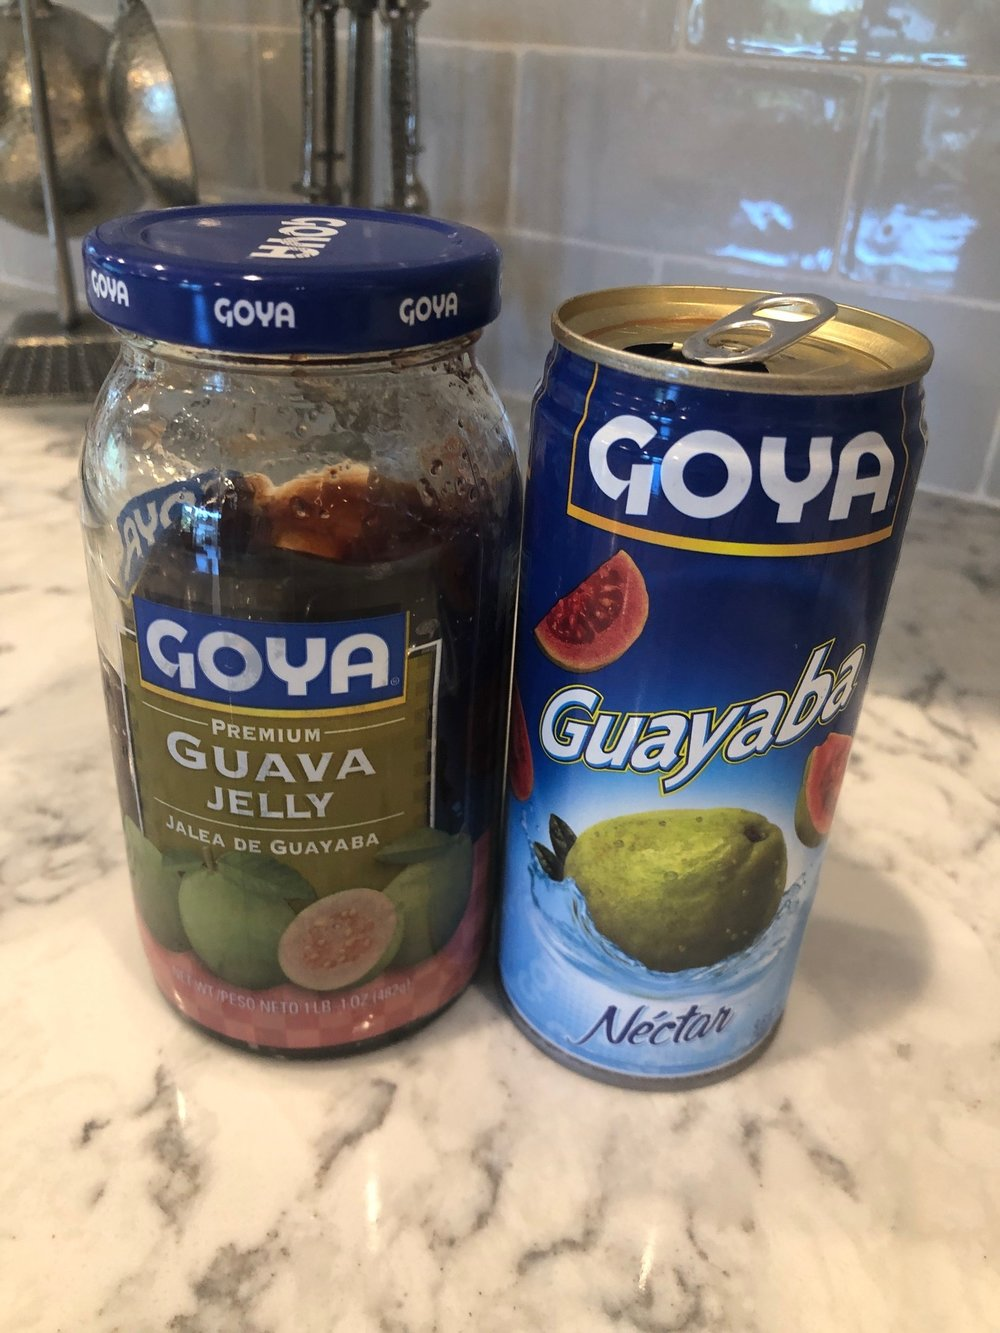 Guava products. Found in the international section of your grocery store.